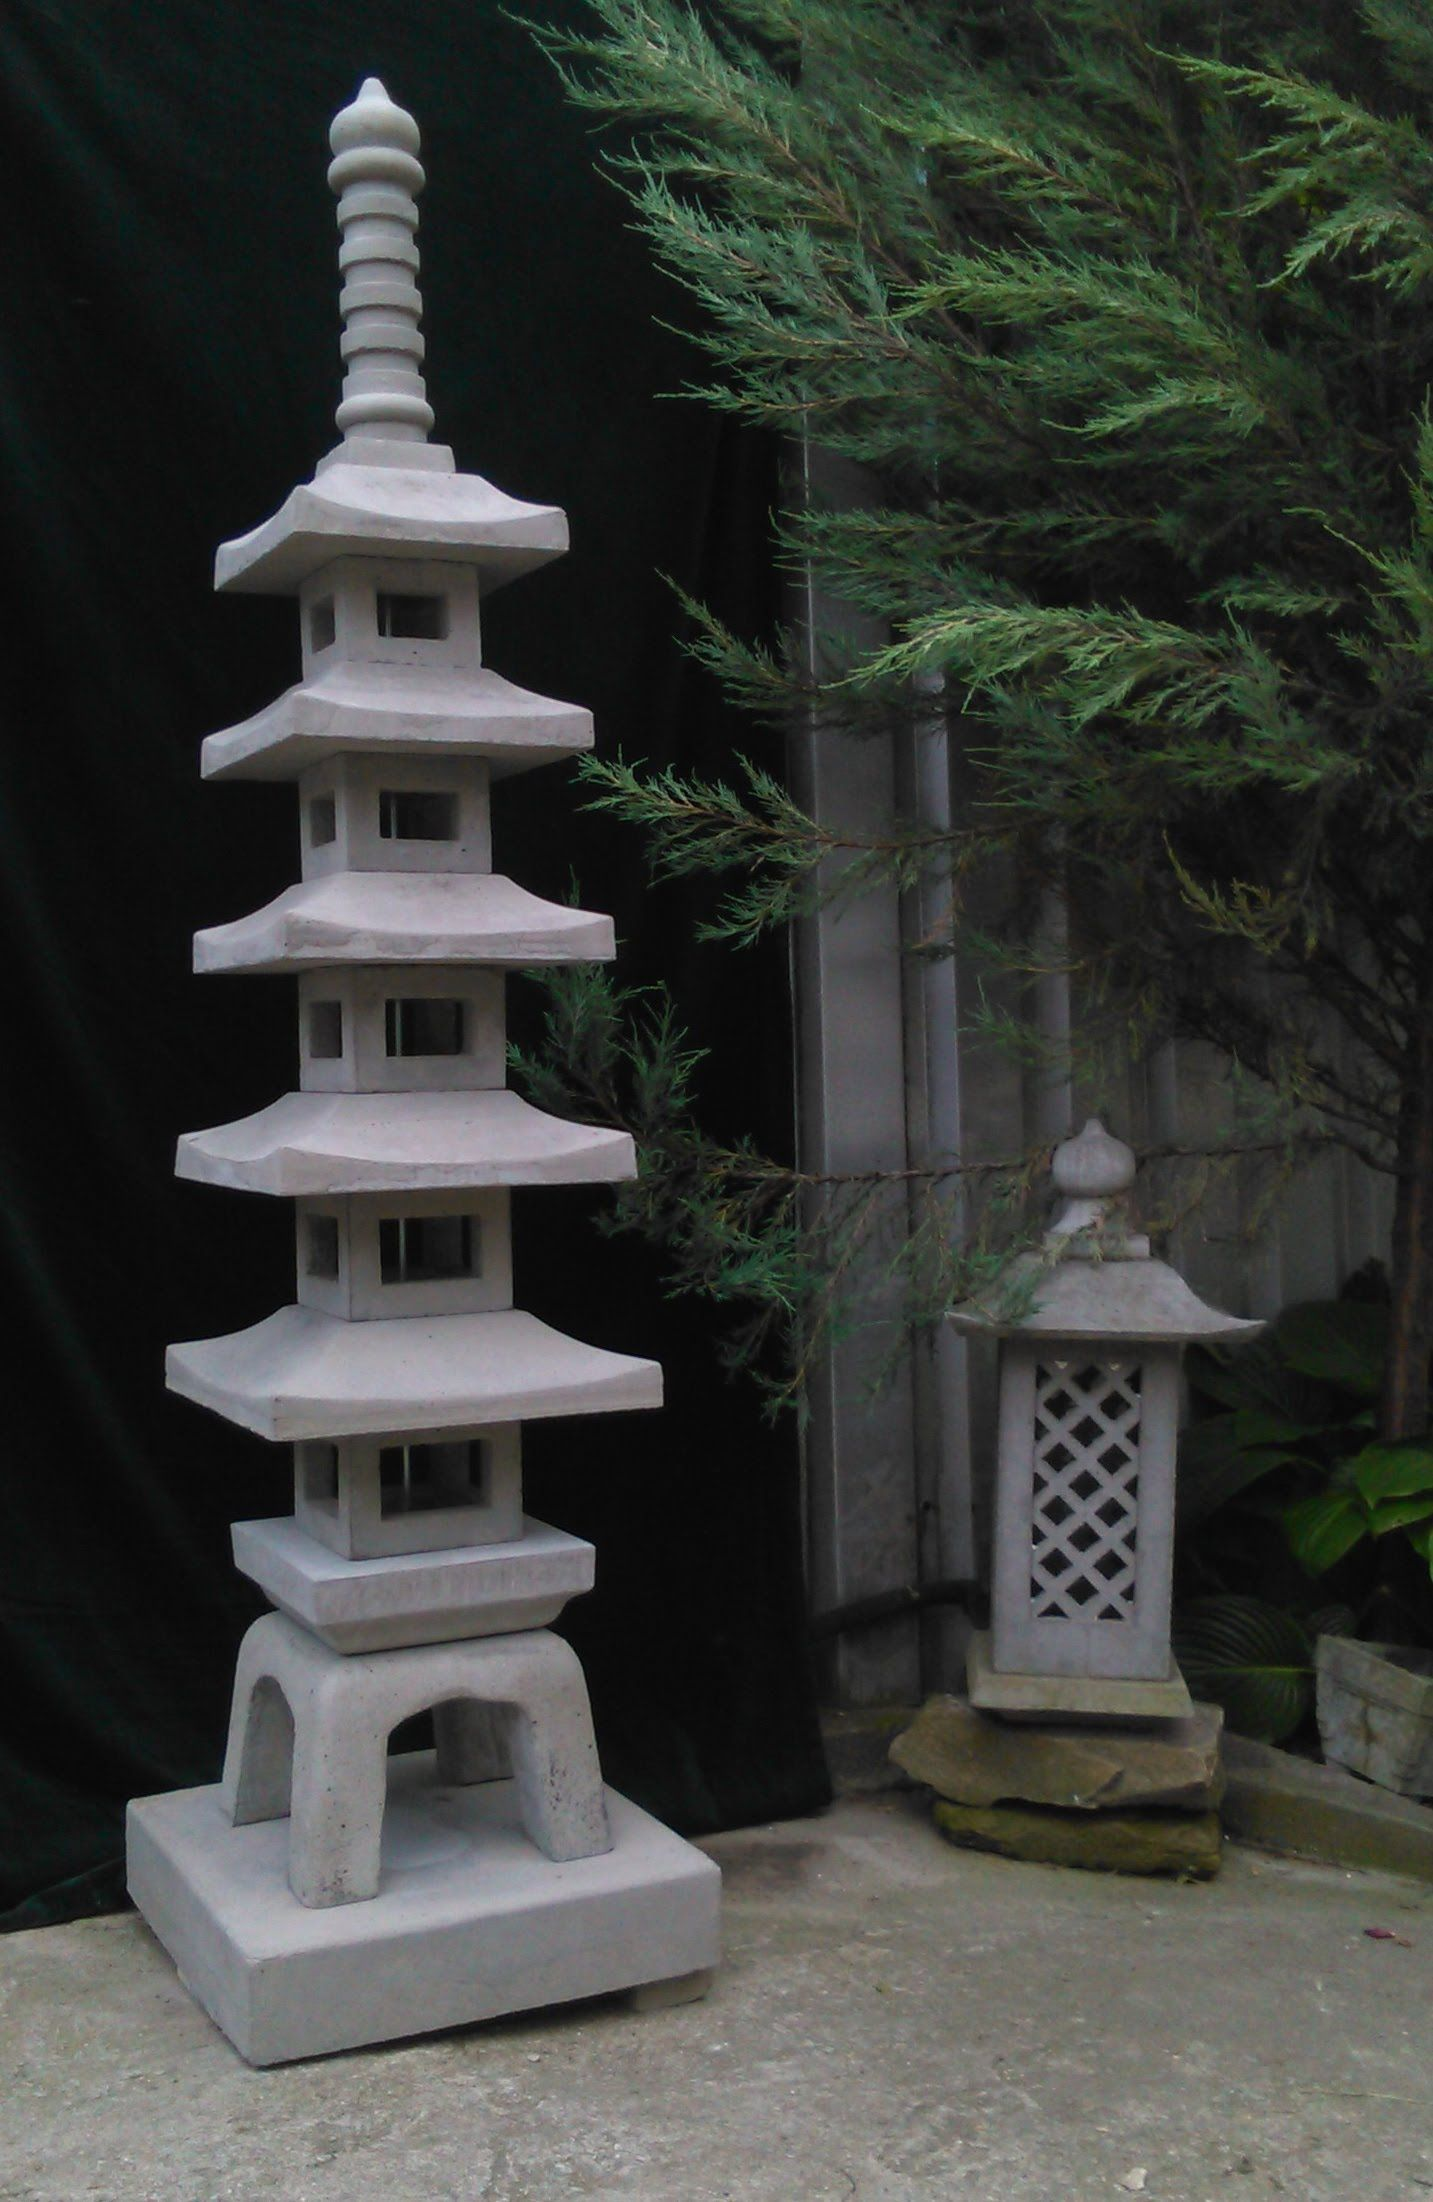 Concrete pagoda lantern making